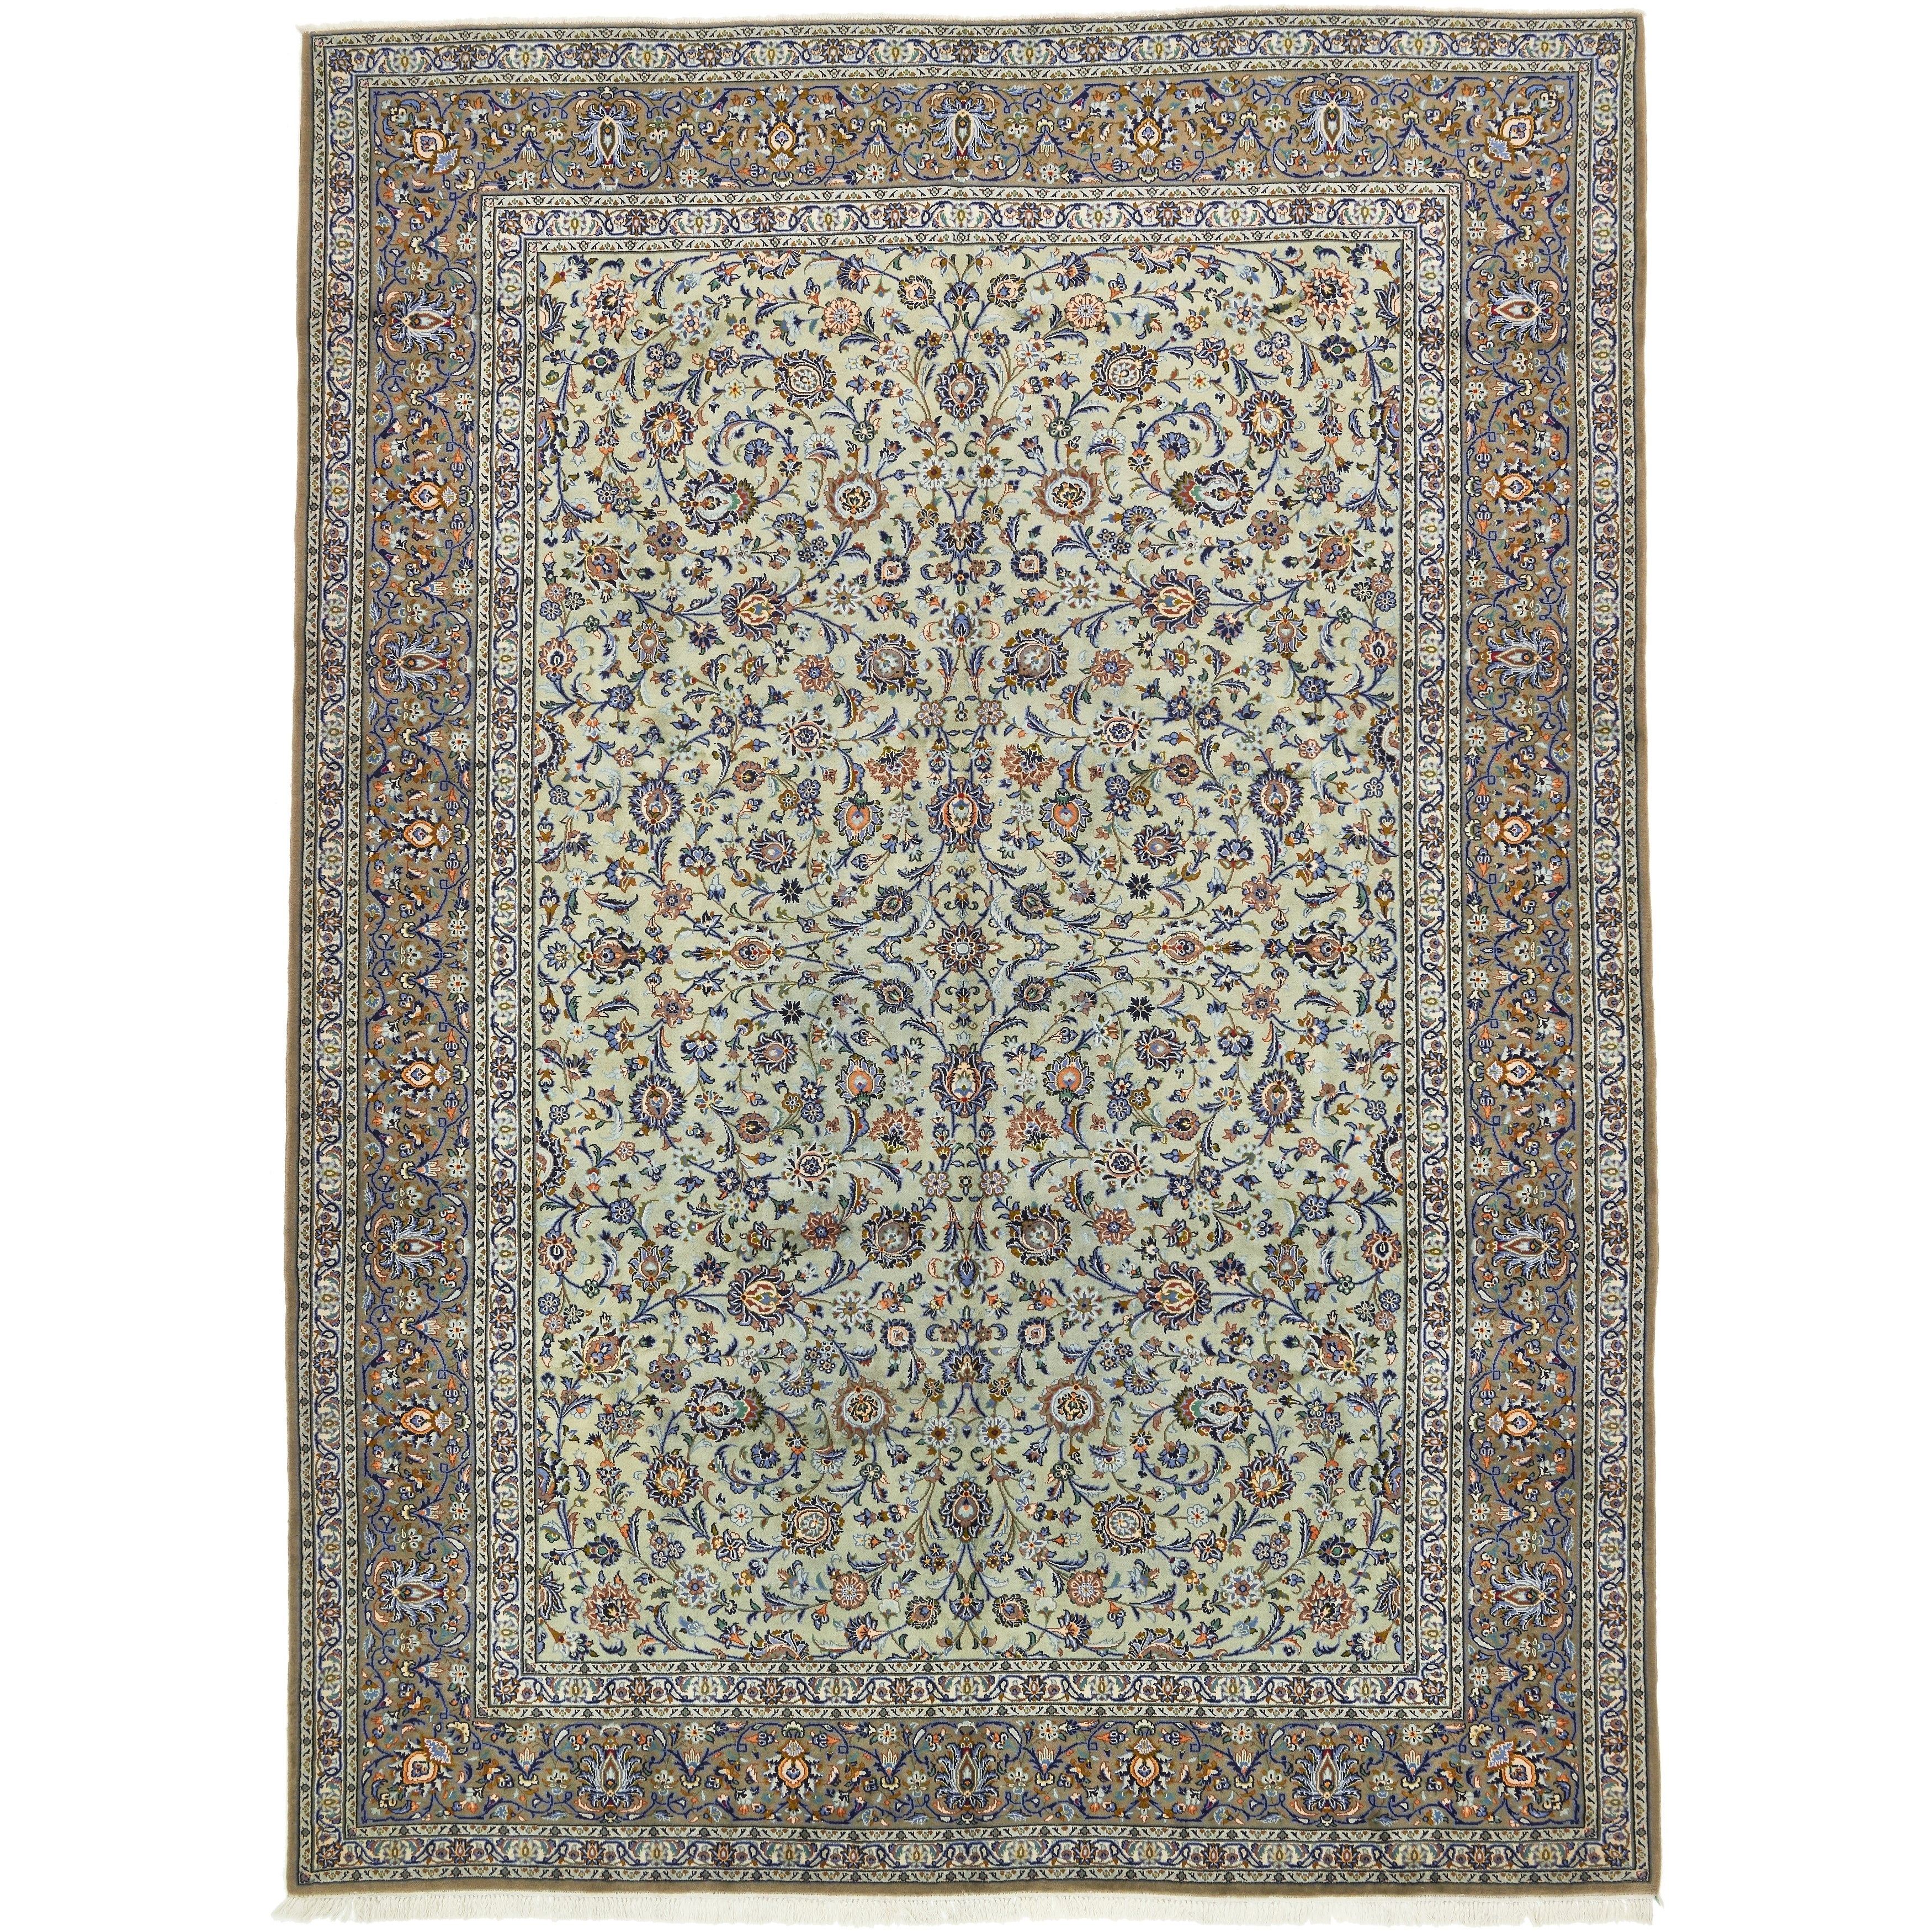 Hand Knotted Kashan Semi Antique Wool Area Rug - 10 2 x 14 (LIGHT GREEN - 10 2 x 14)